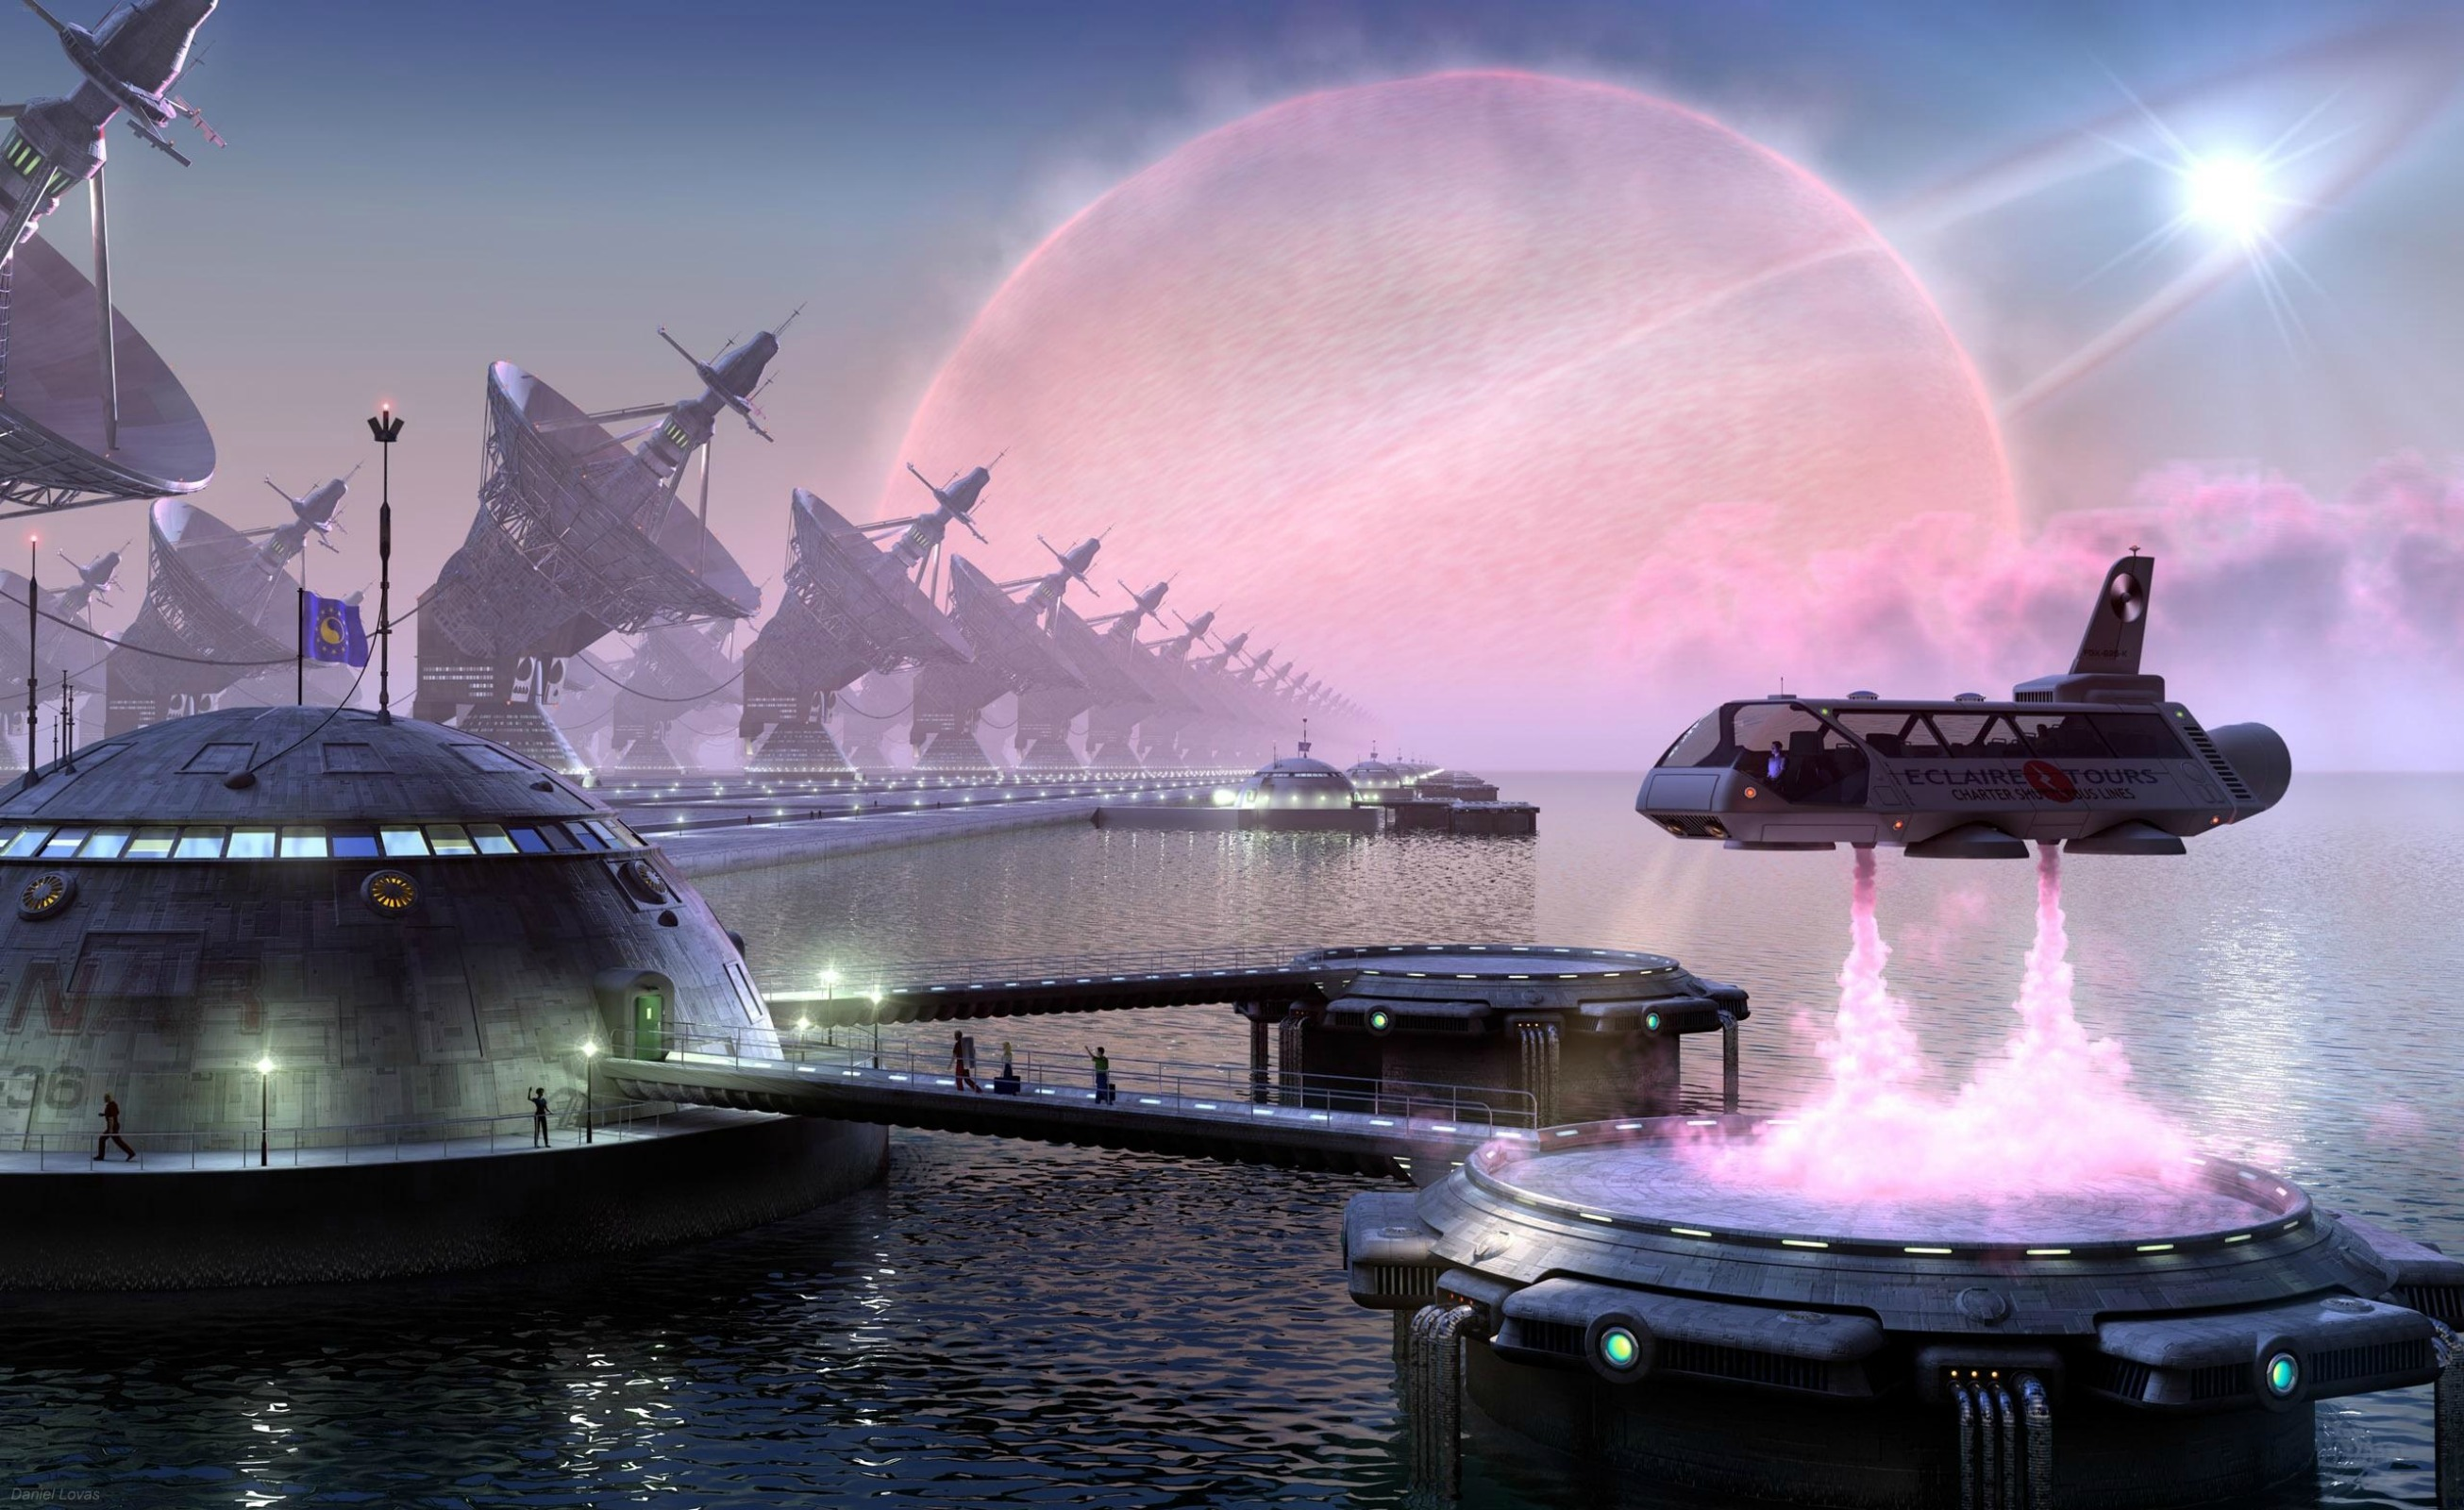 Sci Fi - Spaceport  - Fantasy Wallpaper